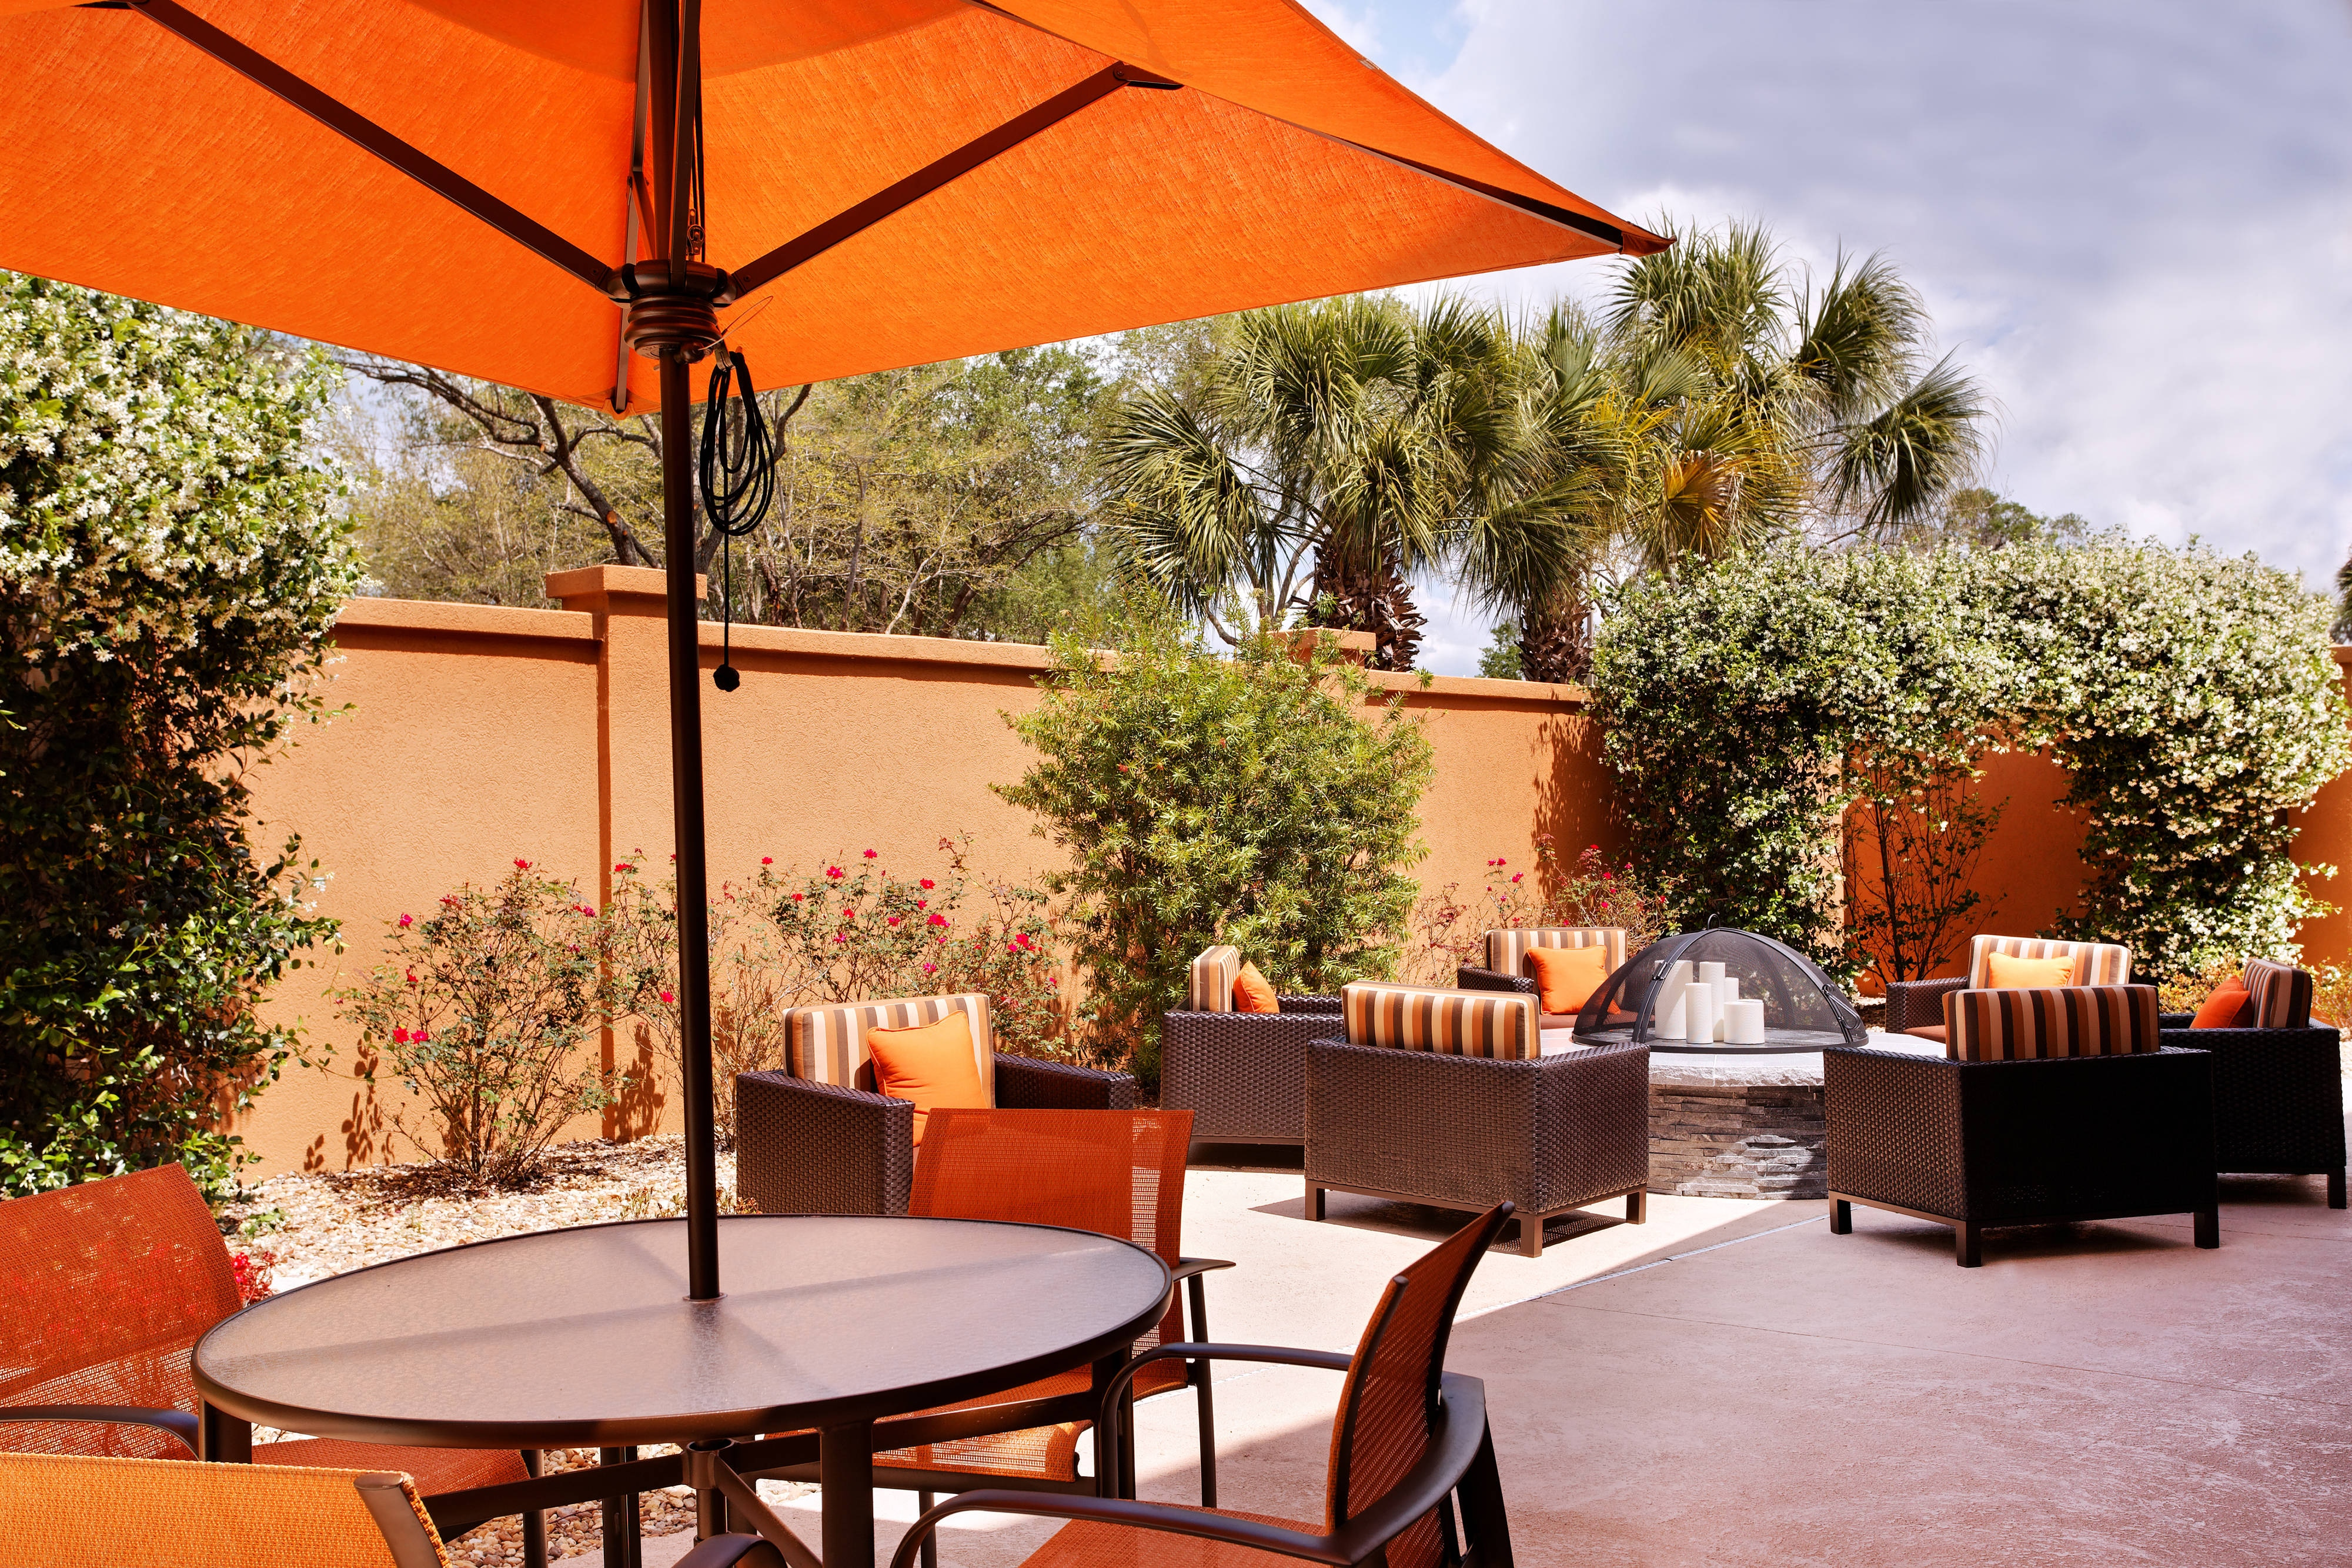 hotel patio in gainesville